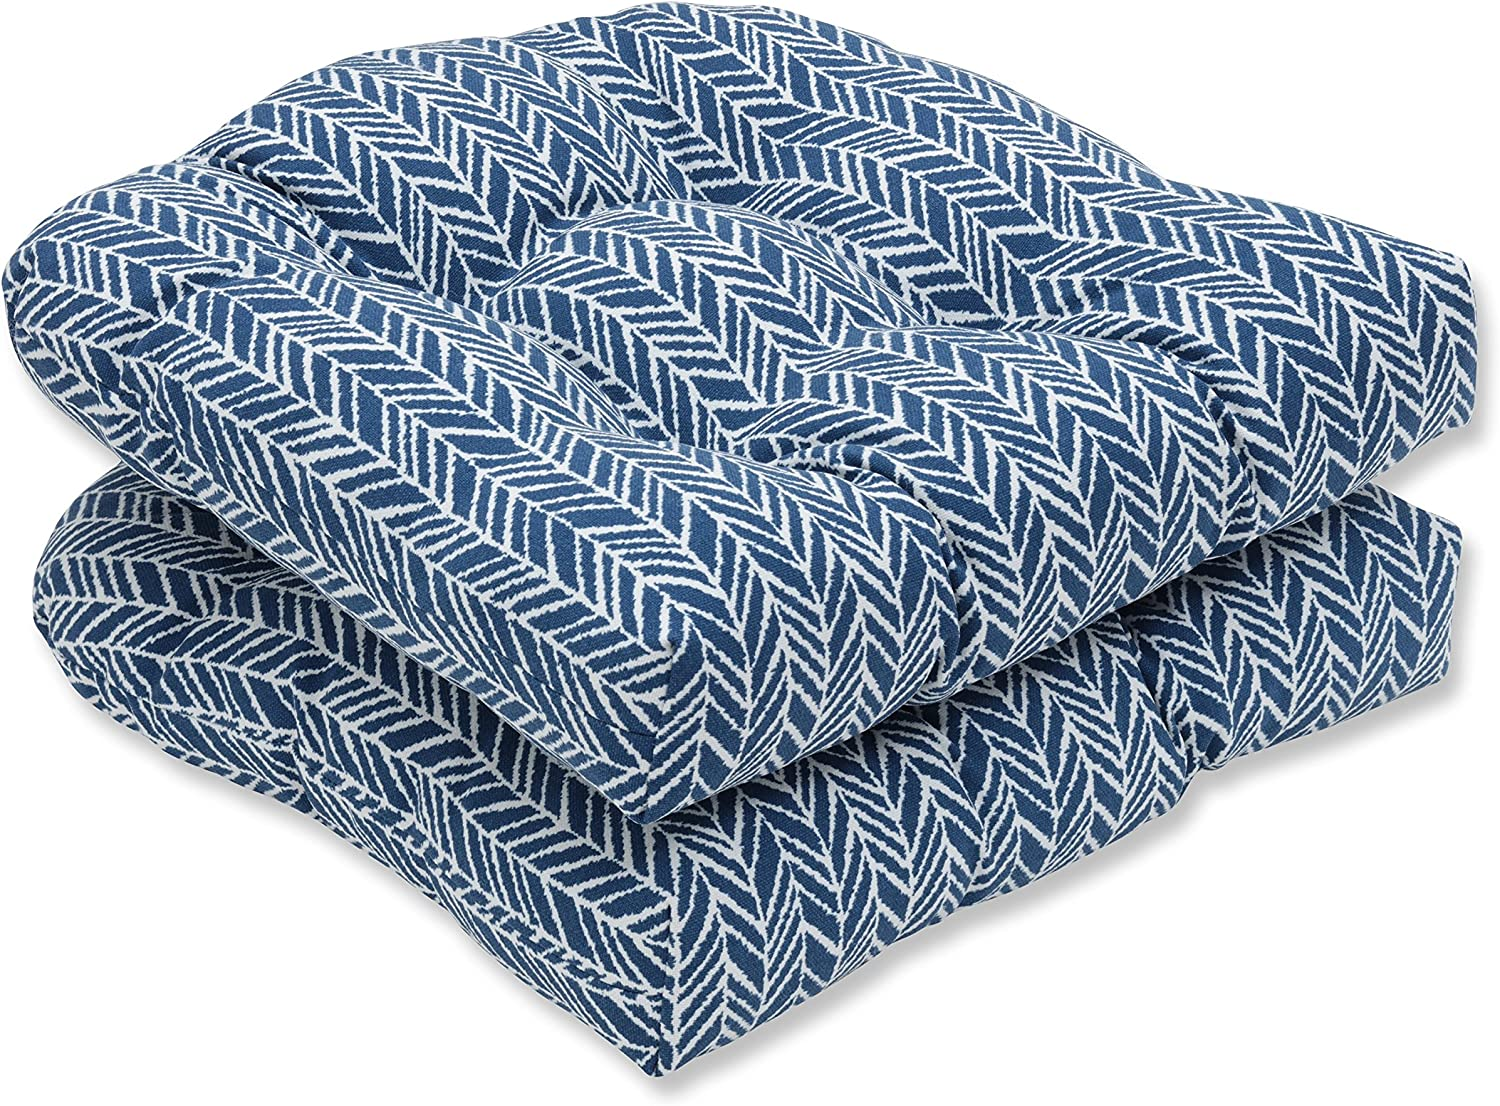 Pillow Perfect Outdoor Indoor Herringbone Ink Blue Wicker Seat Cushion Set of 2, 2 Piece